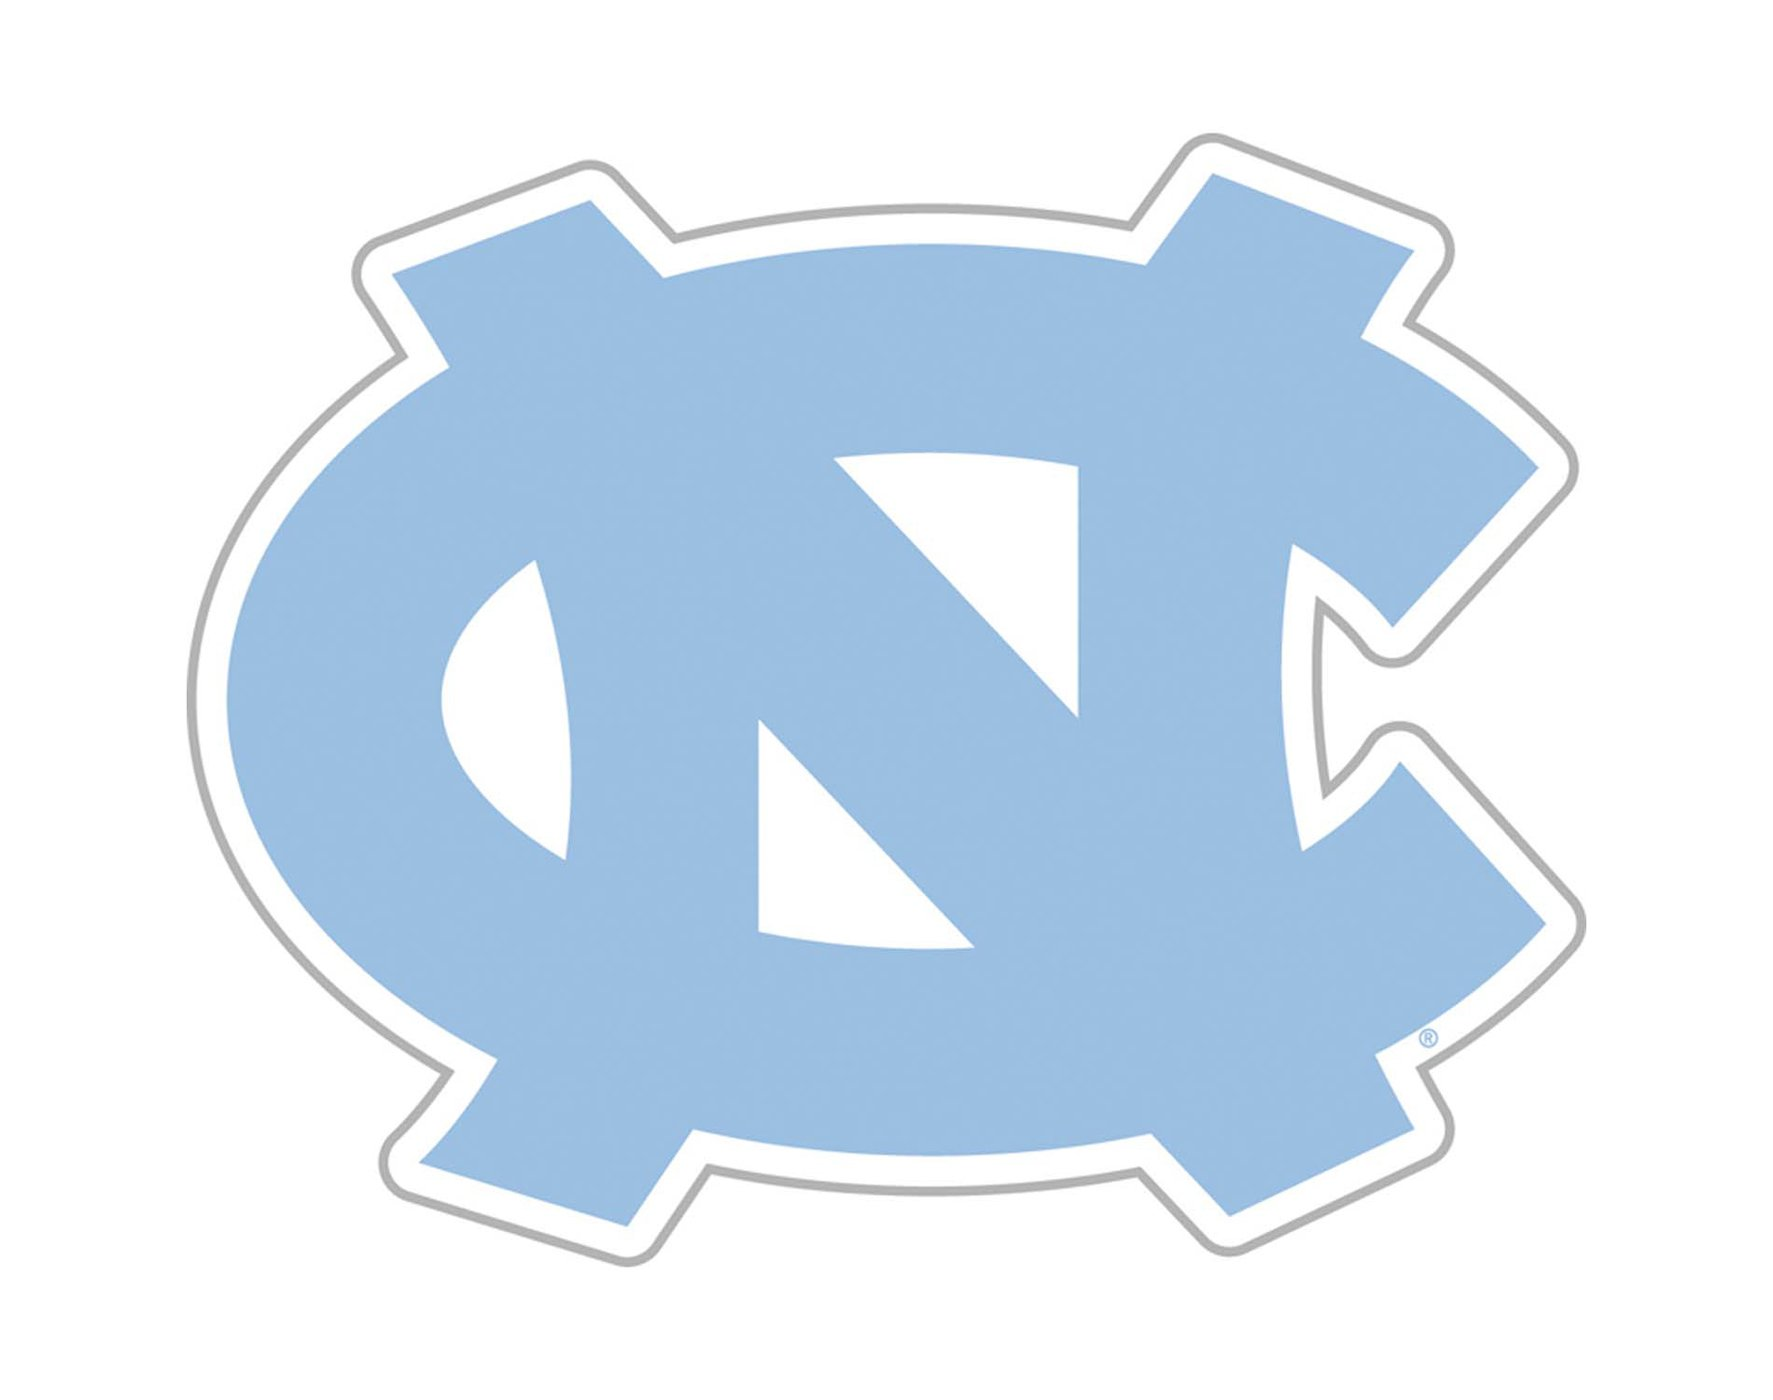 North Carolina Logo, North Carolina Symbol, Meaning, History and ...